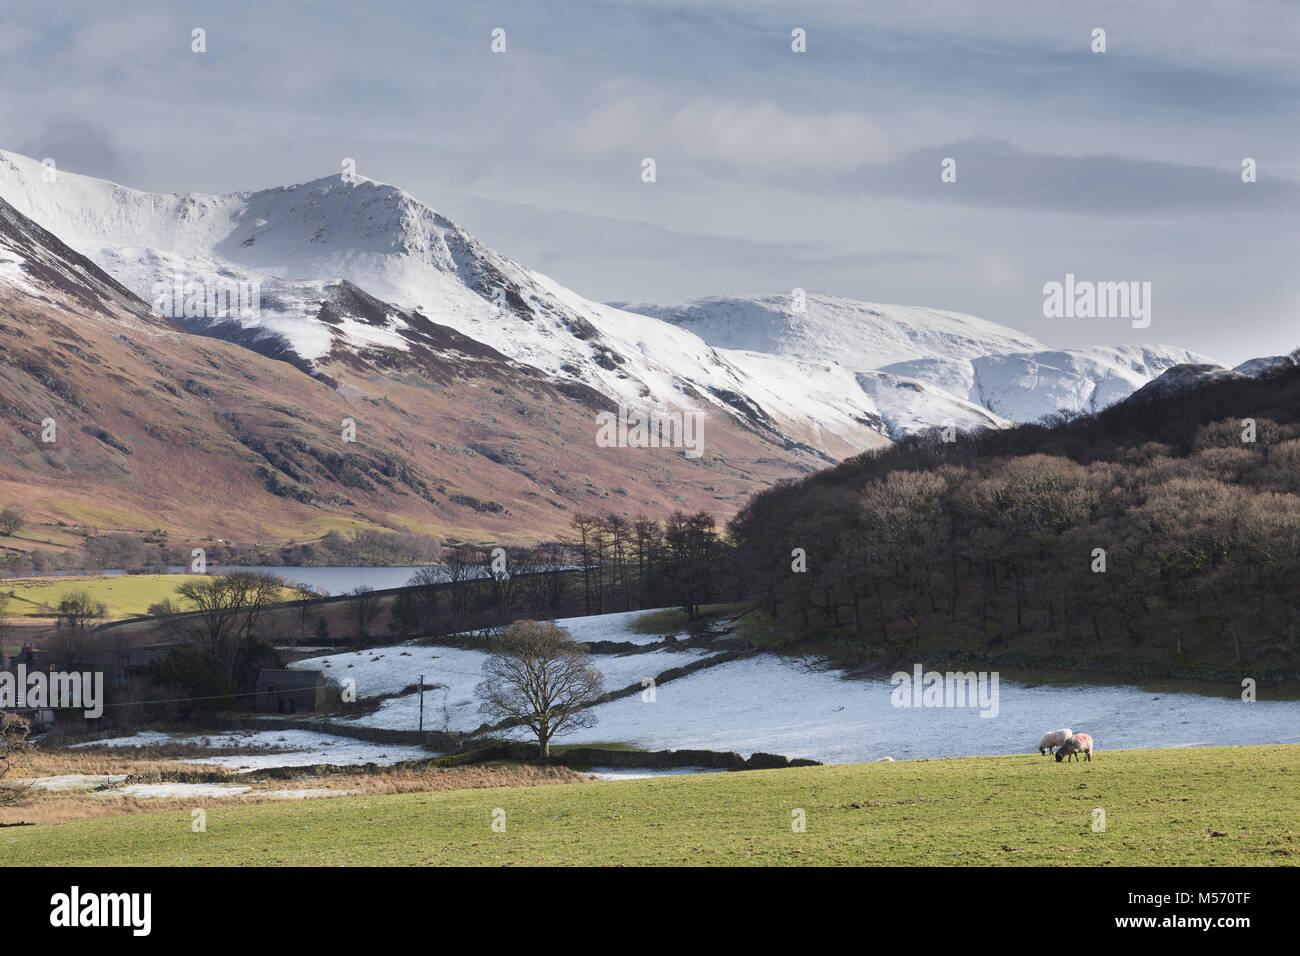 The Lake District, Cumbria, in winter with snow on the tops. Flass Wood, Whiteless Pike and adjacent mountains, - Stock Image